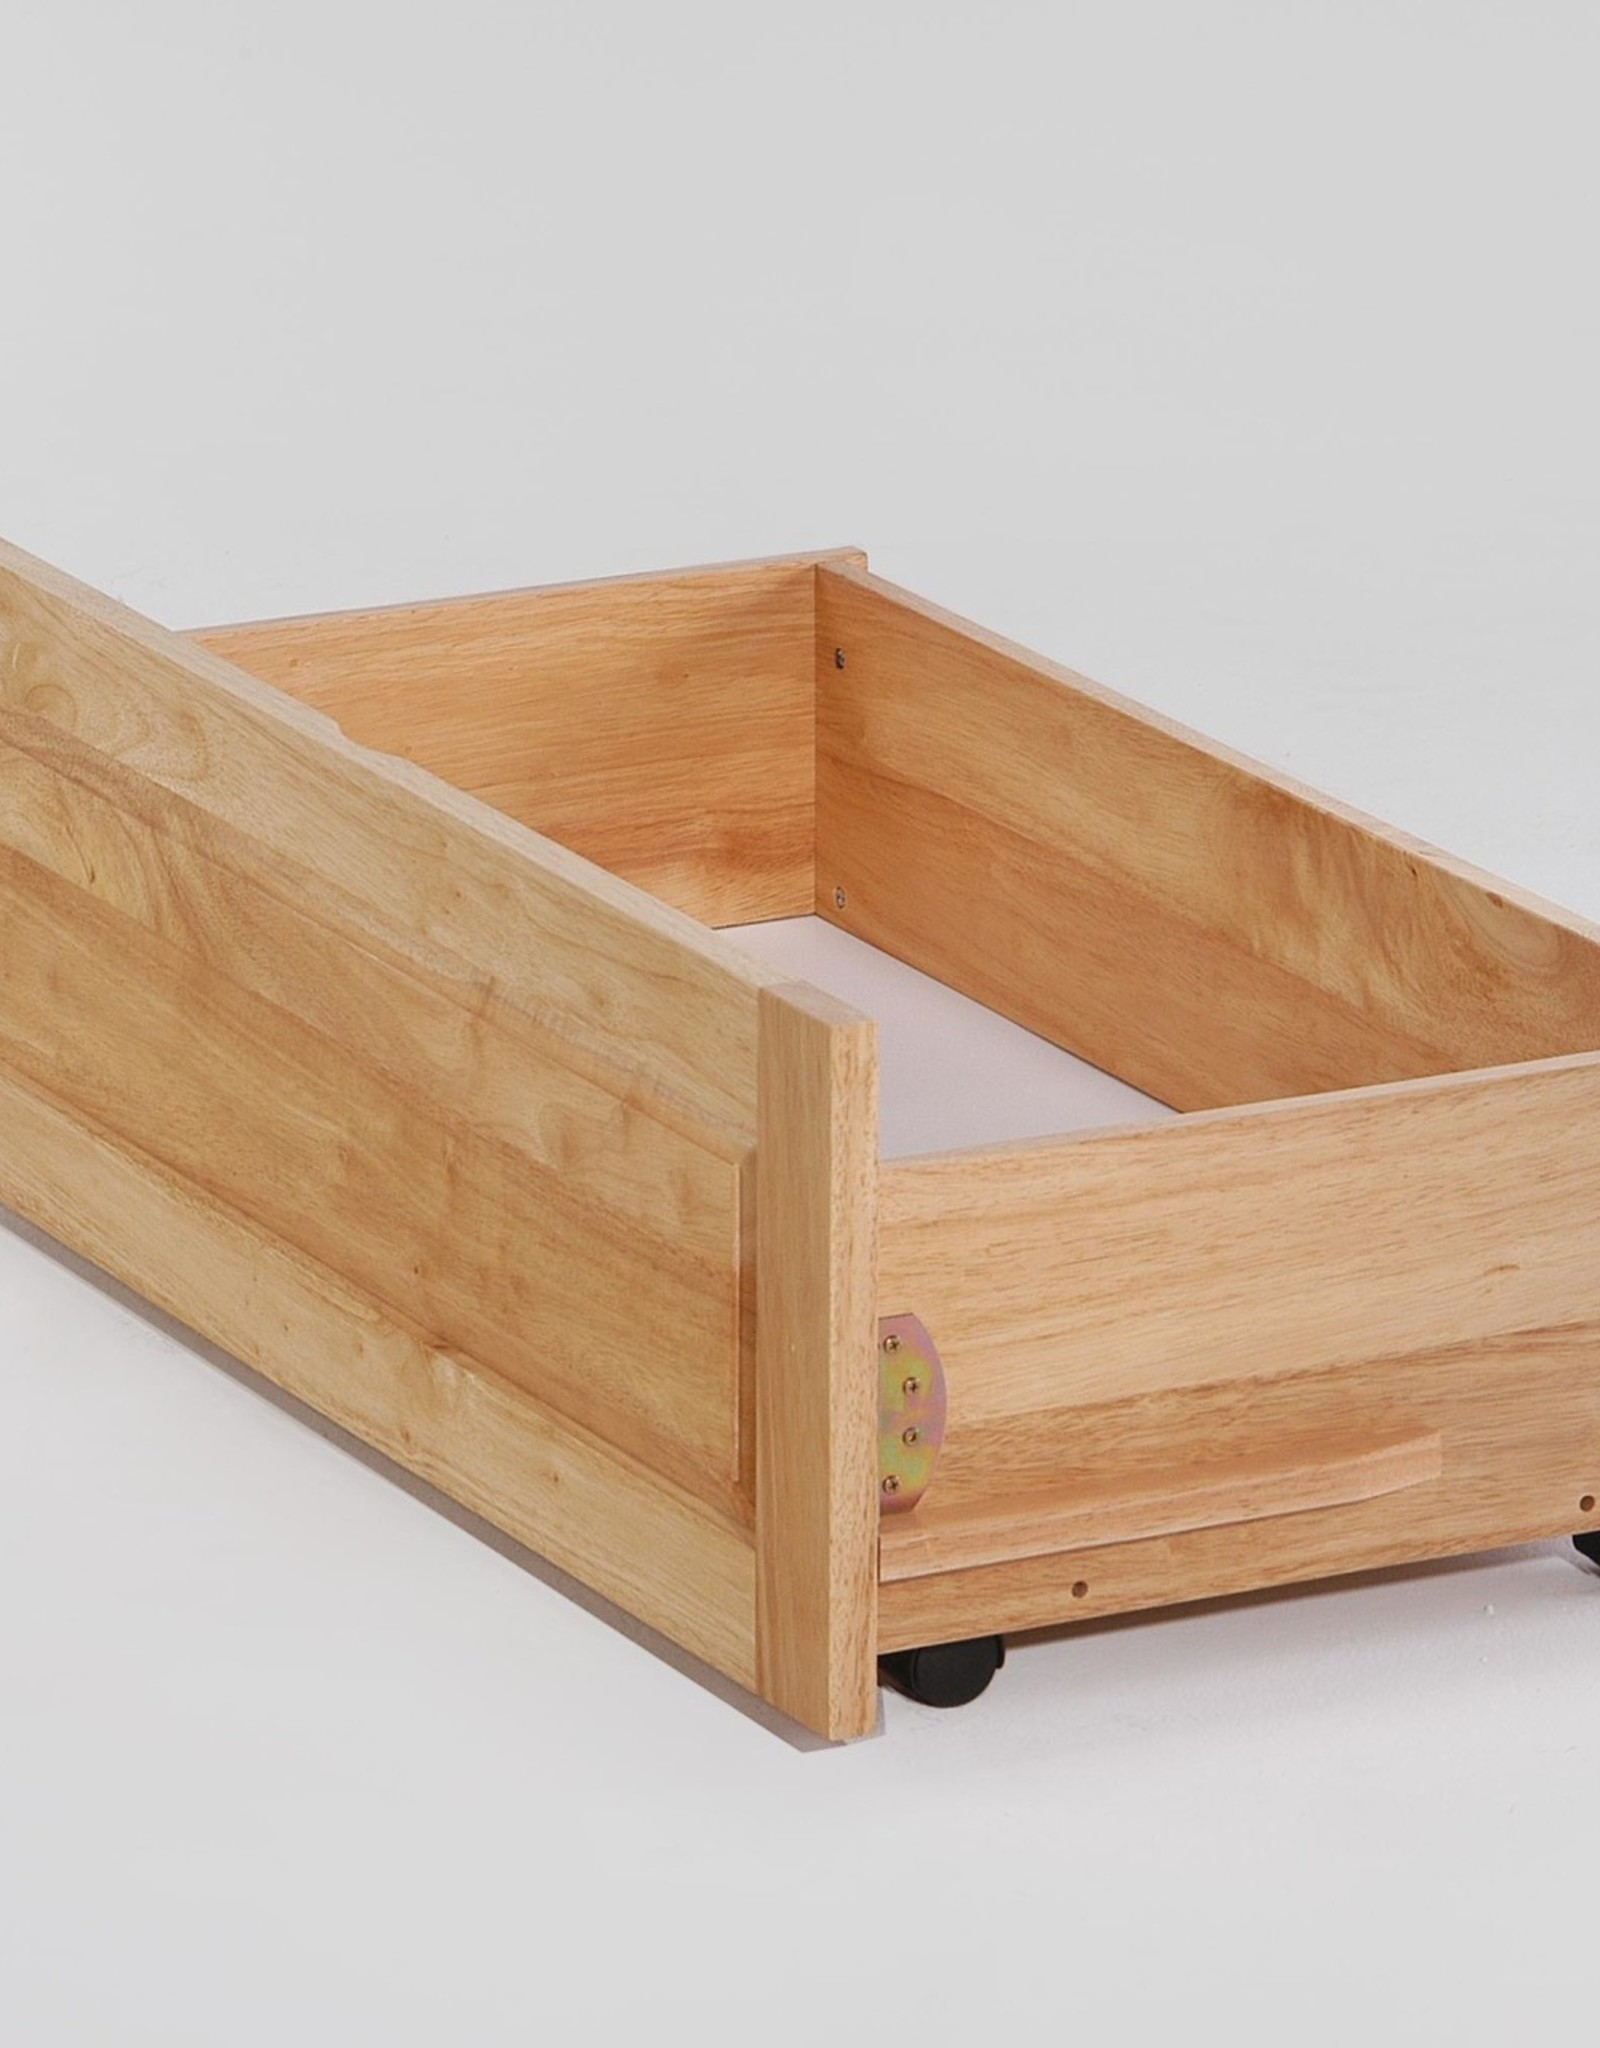 Basic Platform Bed - Comes in Four Colors